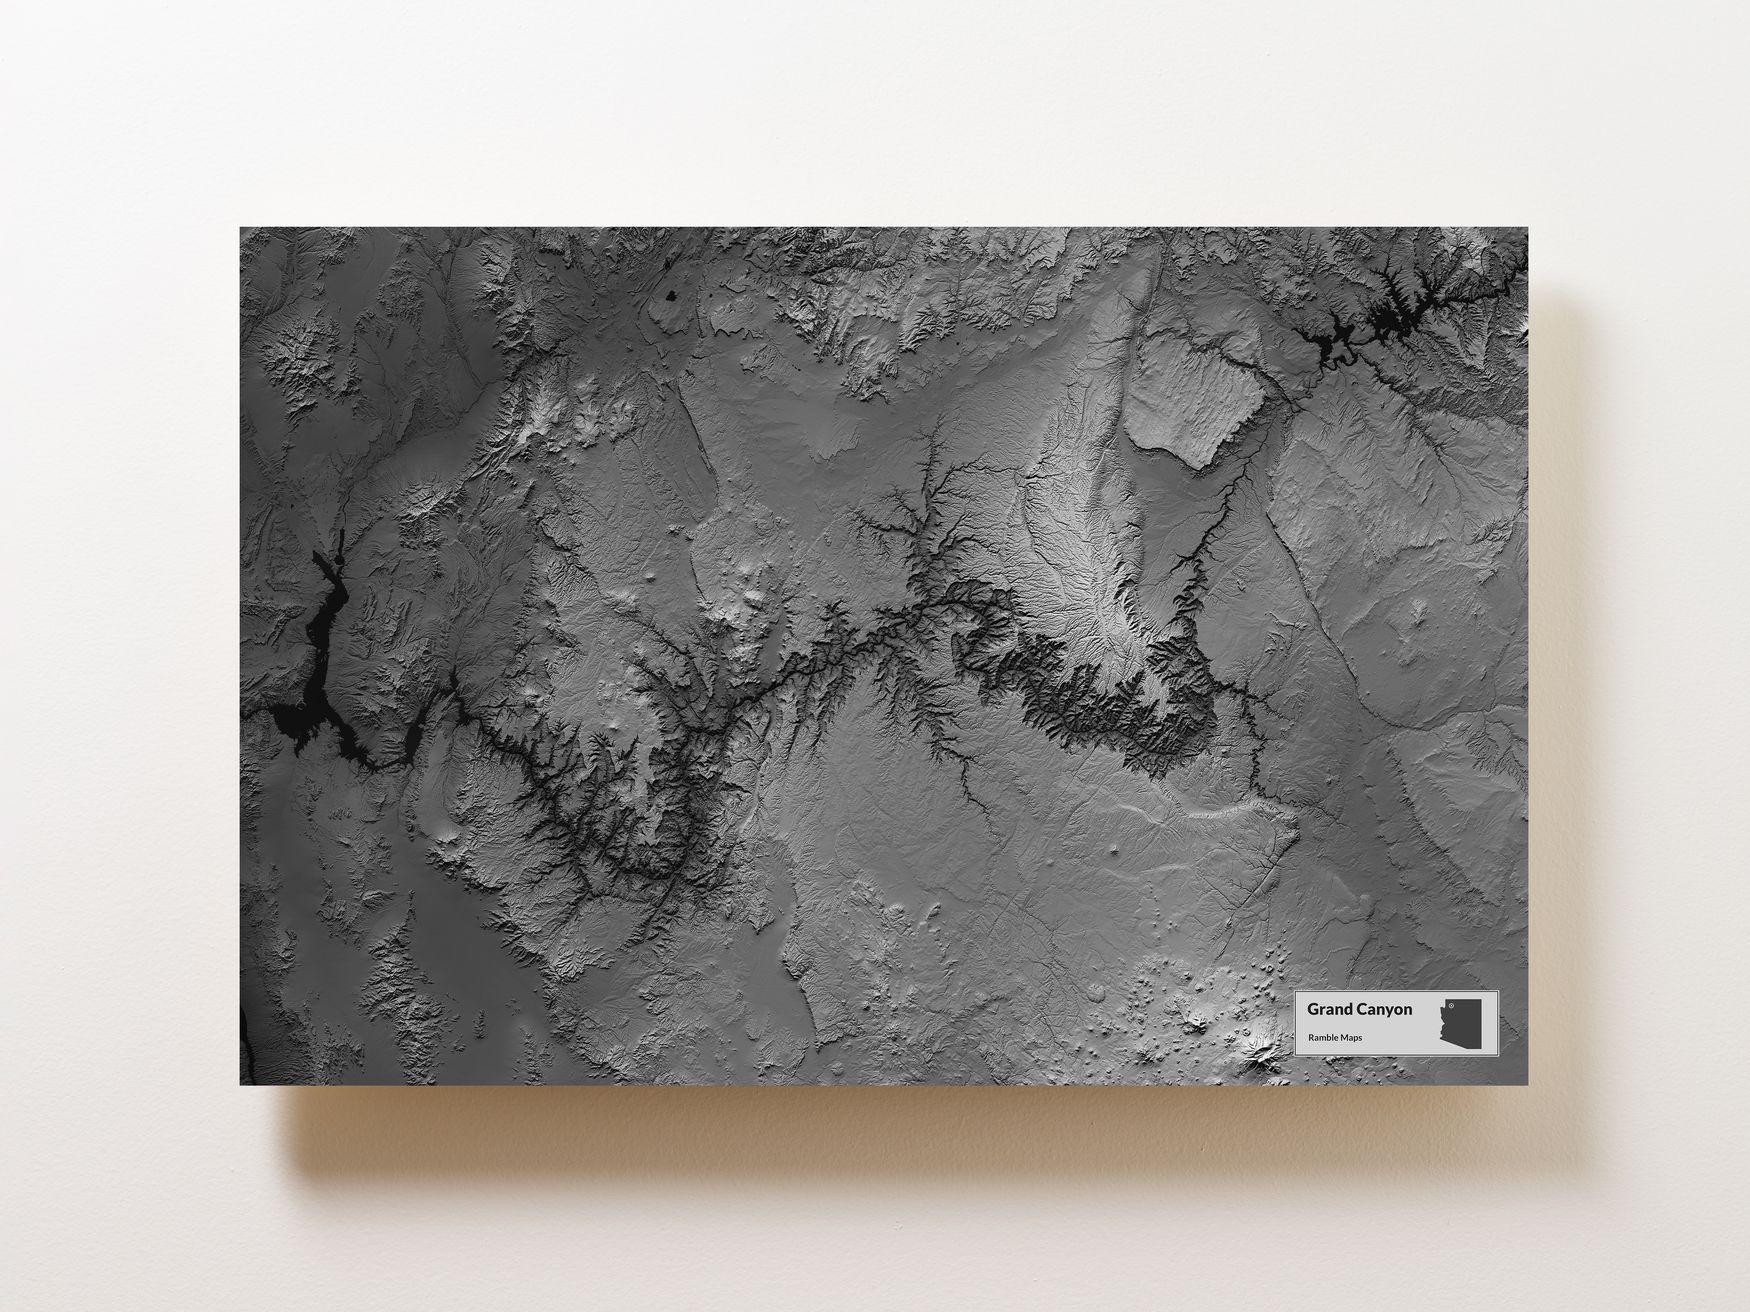 Grand Canyon Terrain Map